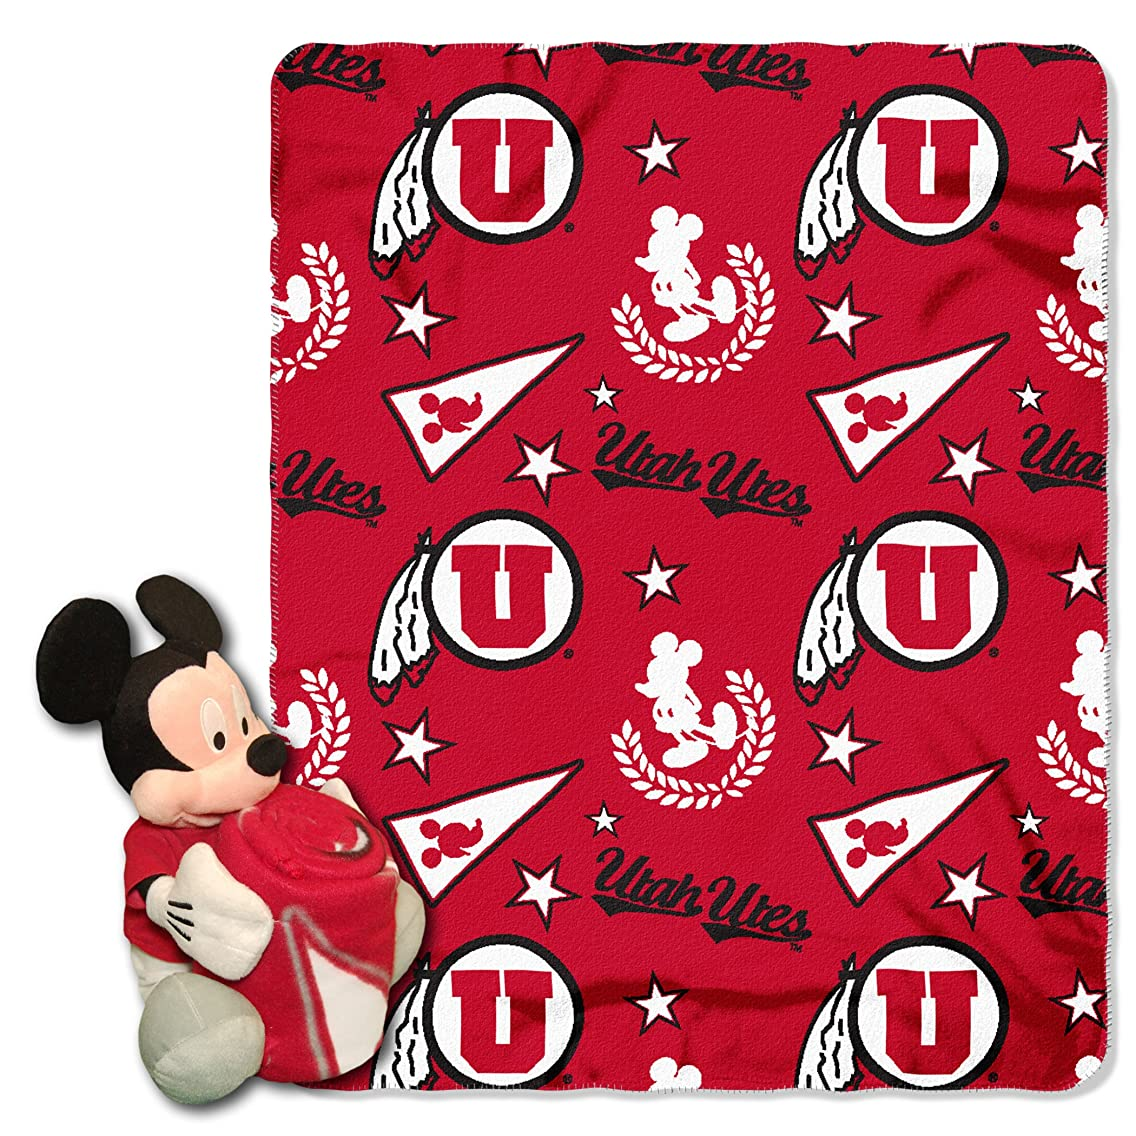 Utah OFFICIAL Collegiate & Disney Cobranded, Mickey Mouse Hugger Character Shaped Pillow and 40x 50 Fleece Throw Set